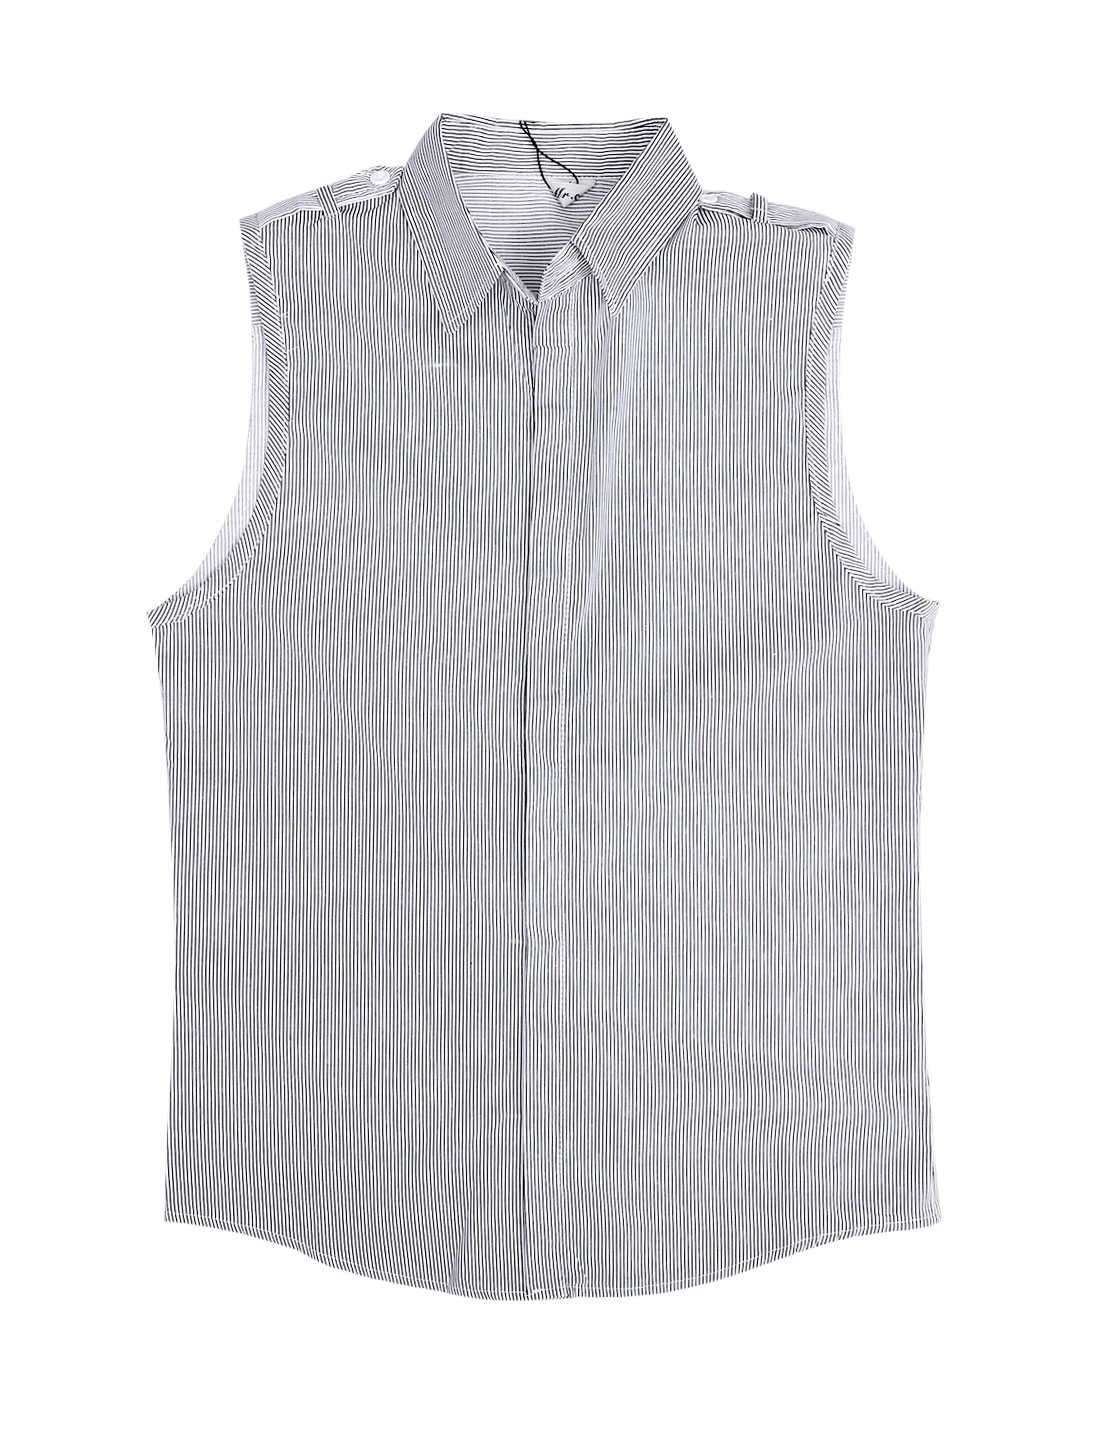 Men Point Collar Sleeveless Single Breasted Stripes Shirt Black White M